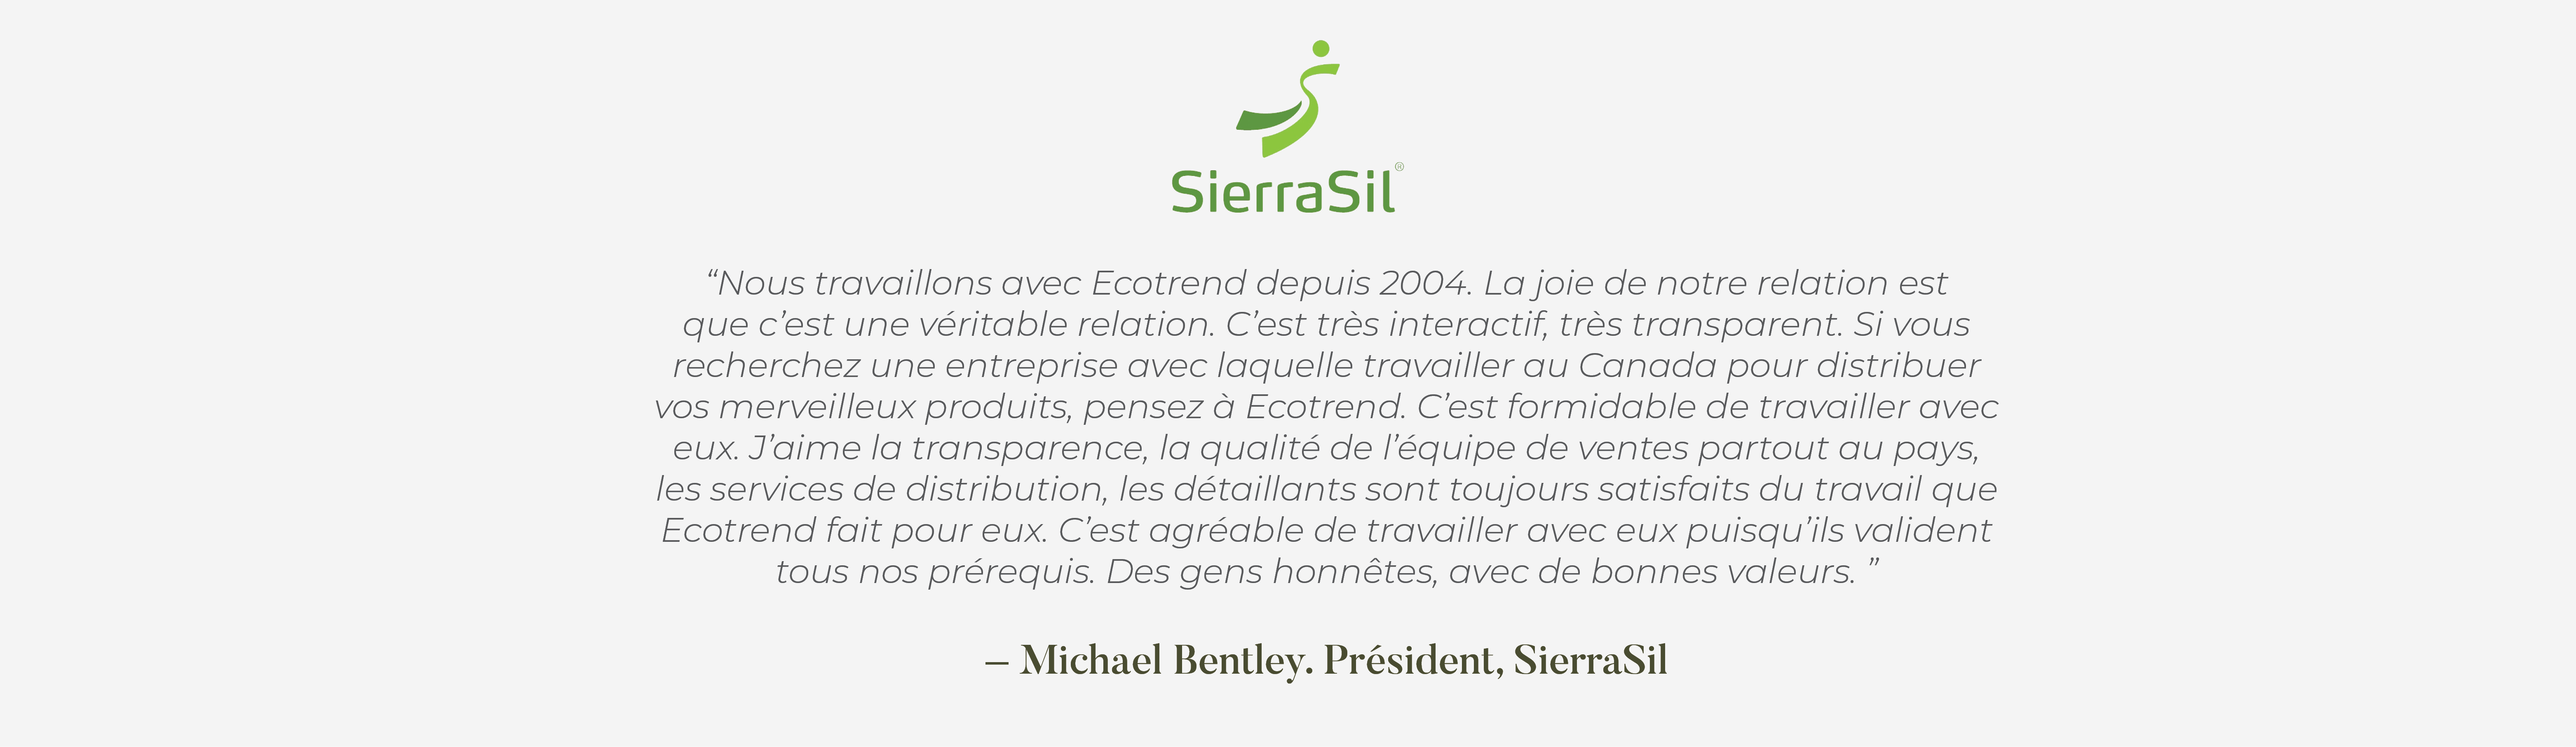 Michael Bentley President of SierraSil testimonial